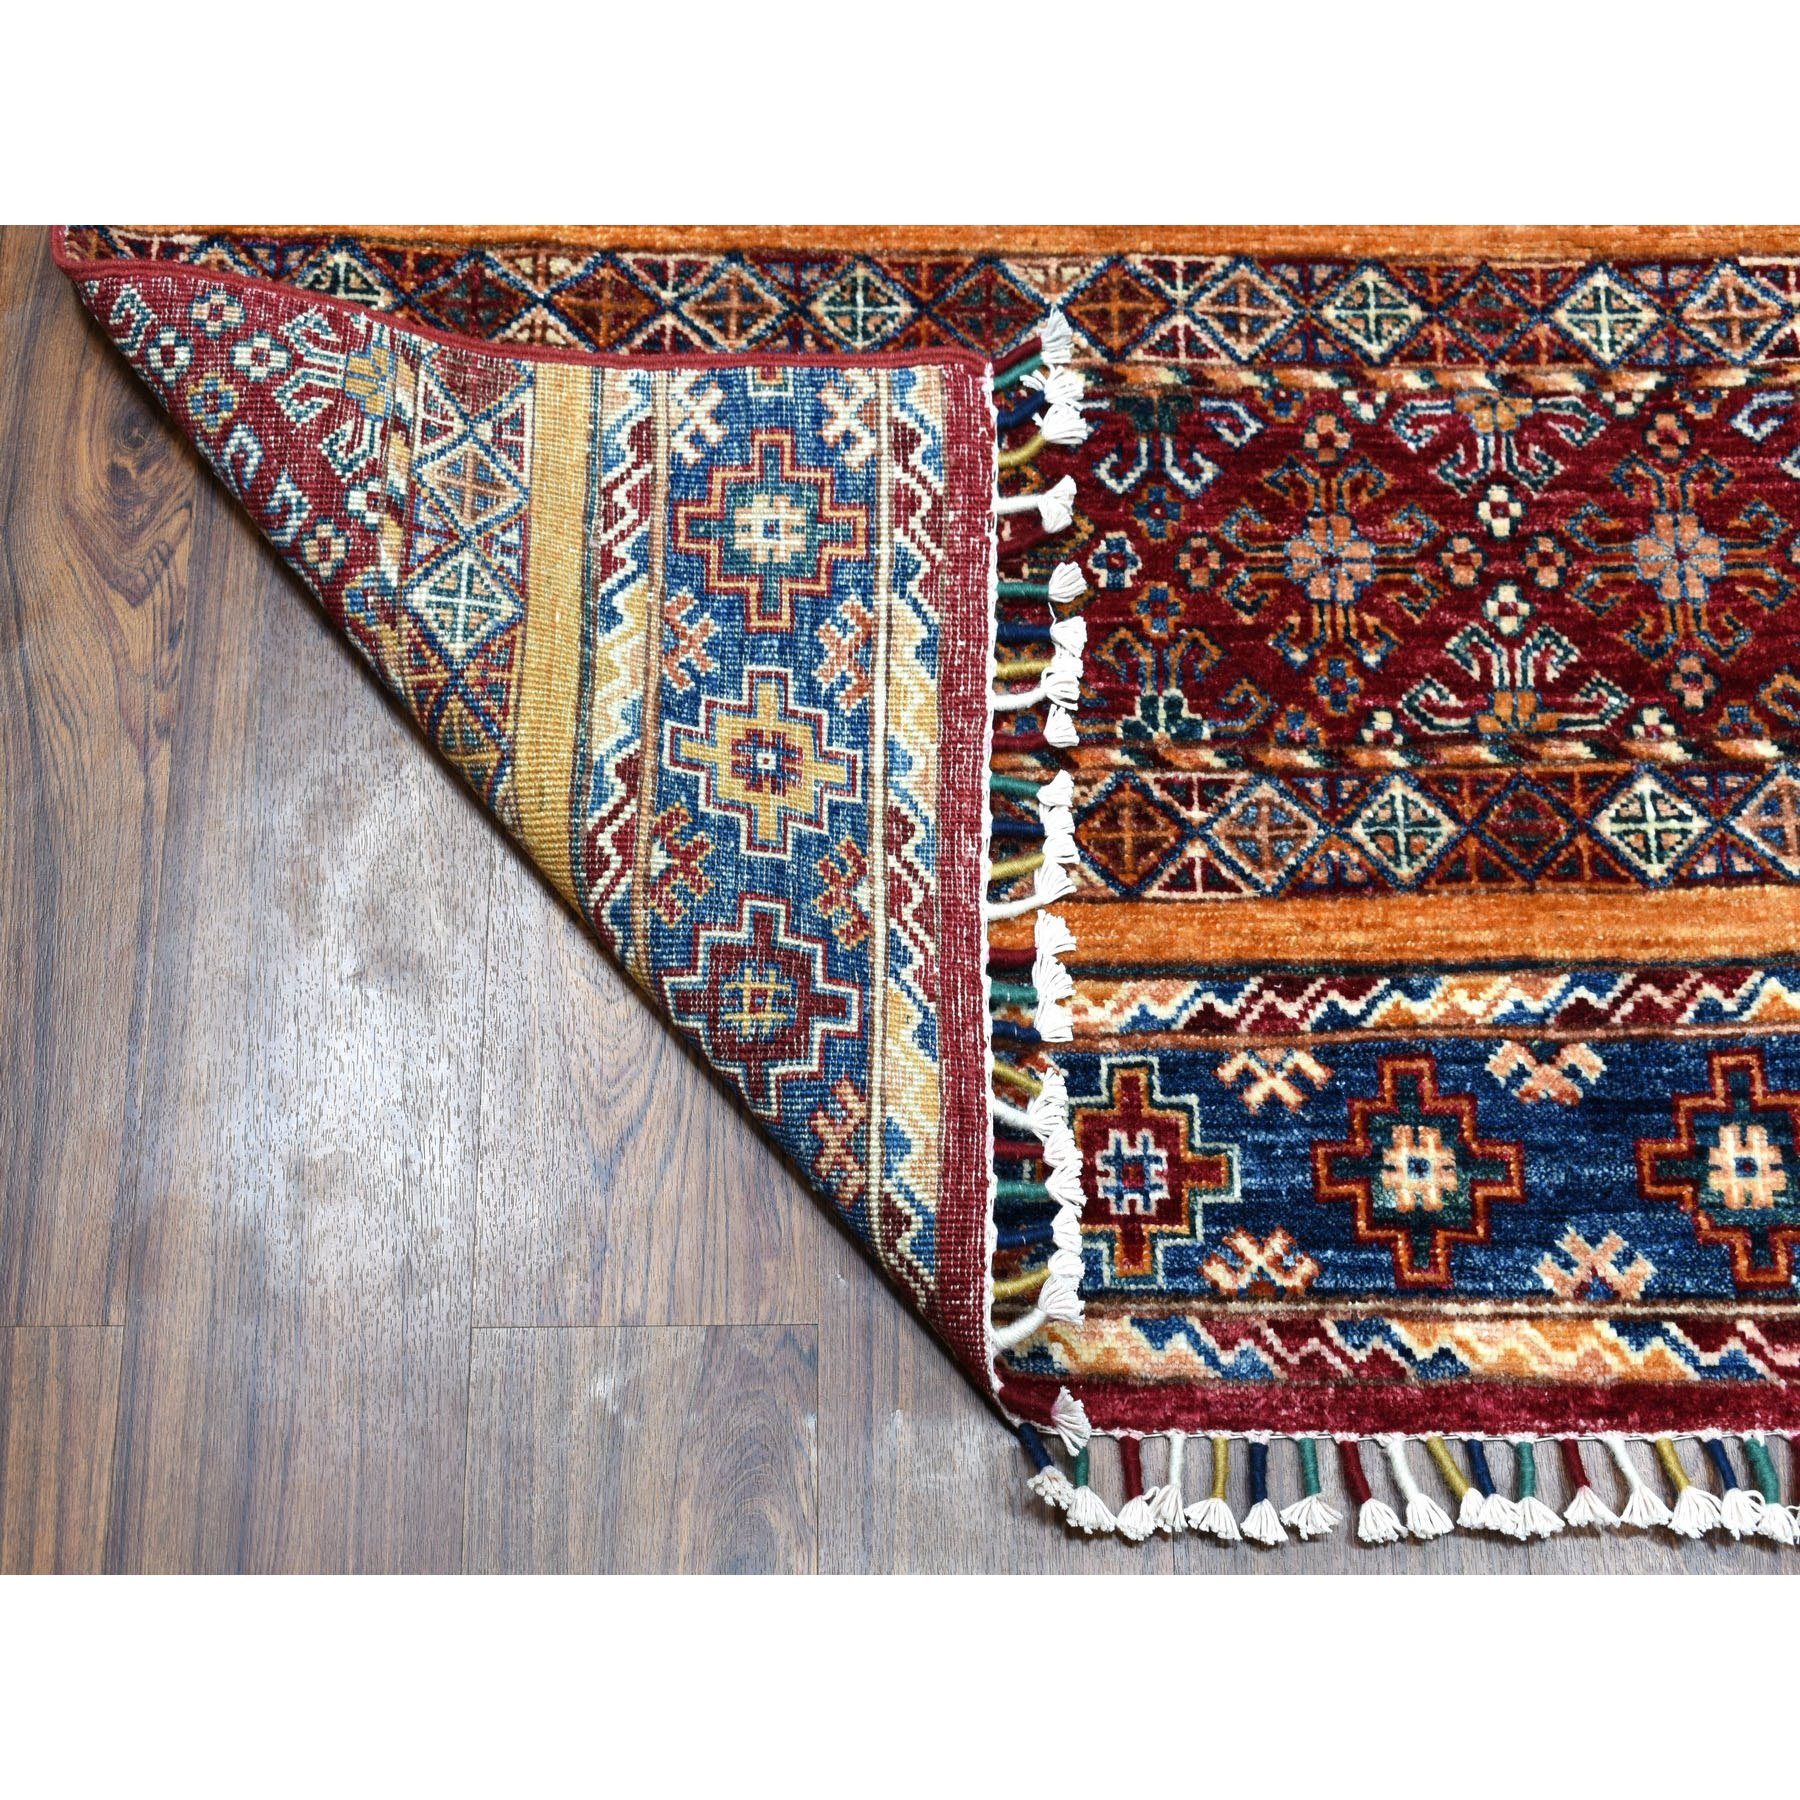 4-8 x7- Khorjin Design Colorful Super Kazak Pure Wool Hand Knotted Oriental Rug